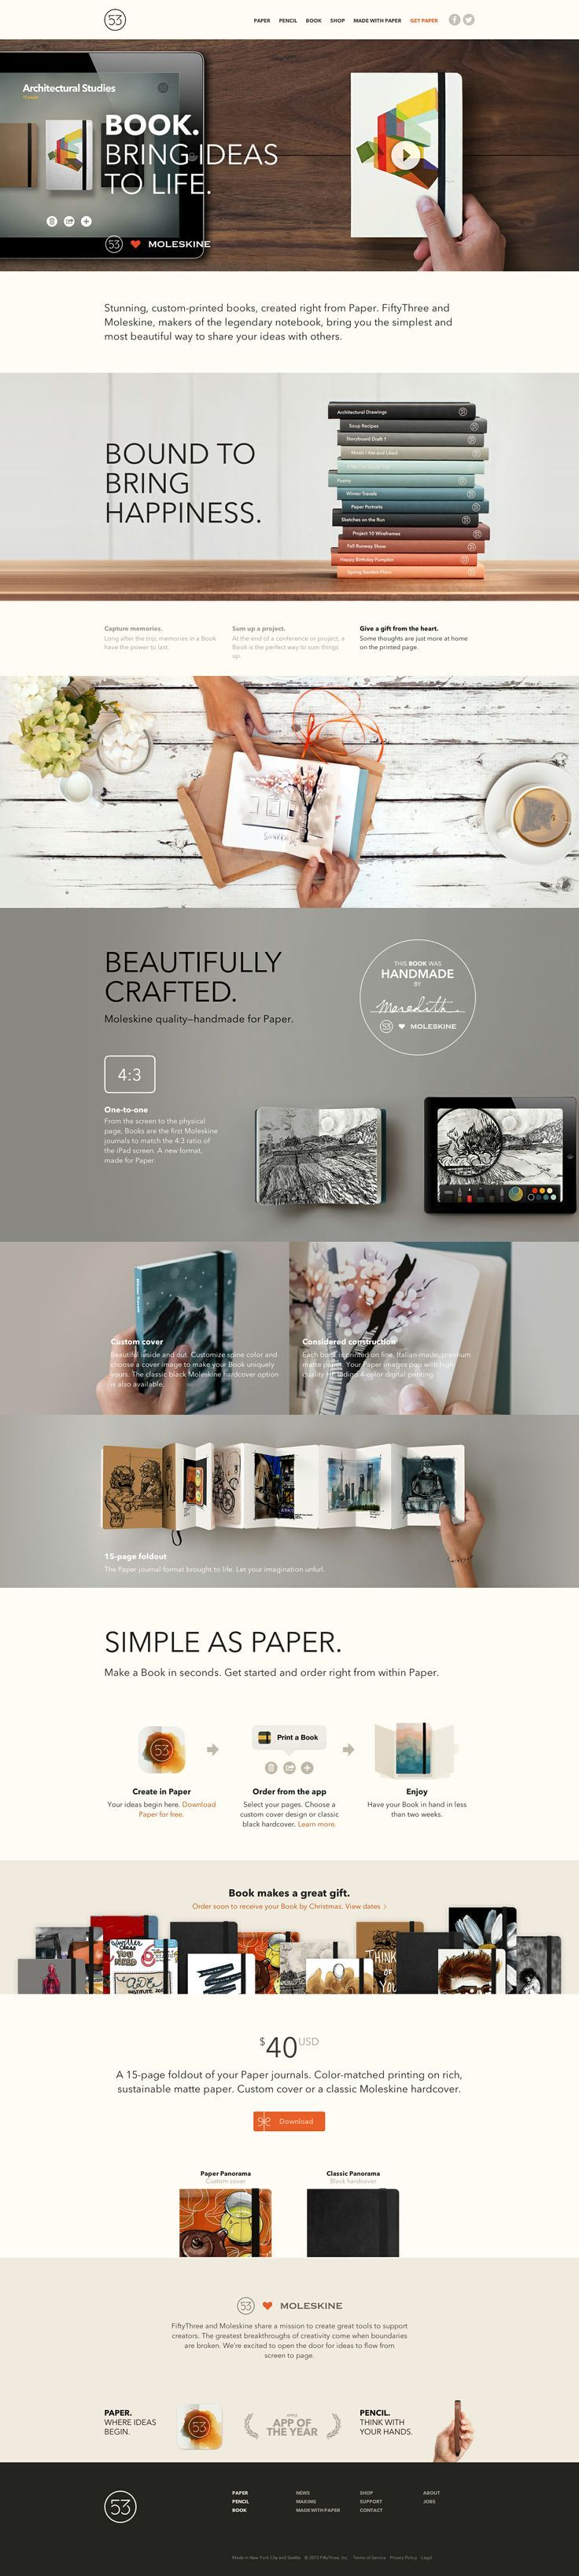 Best 25+ Best web design ideas on Pinterest | Web design services ...